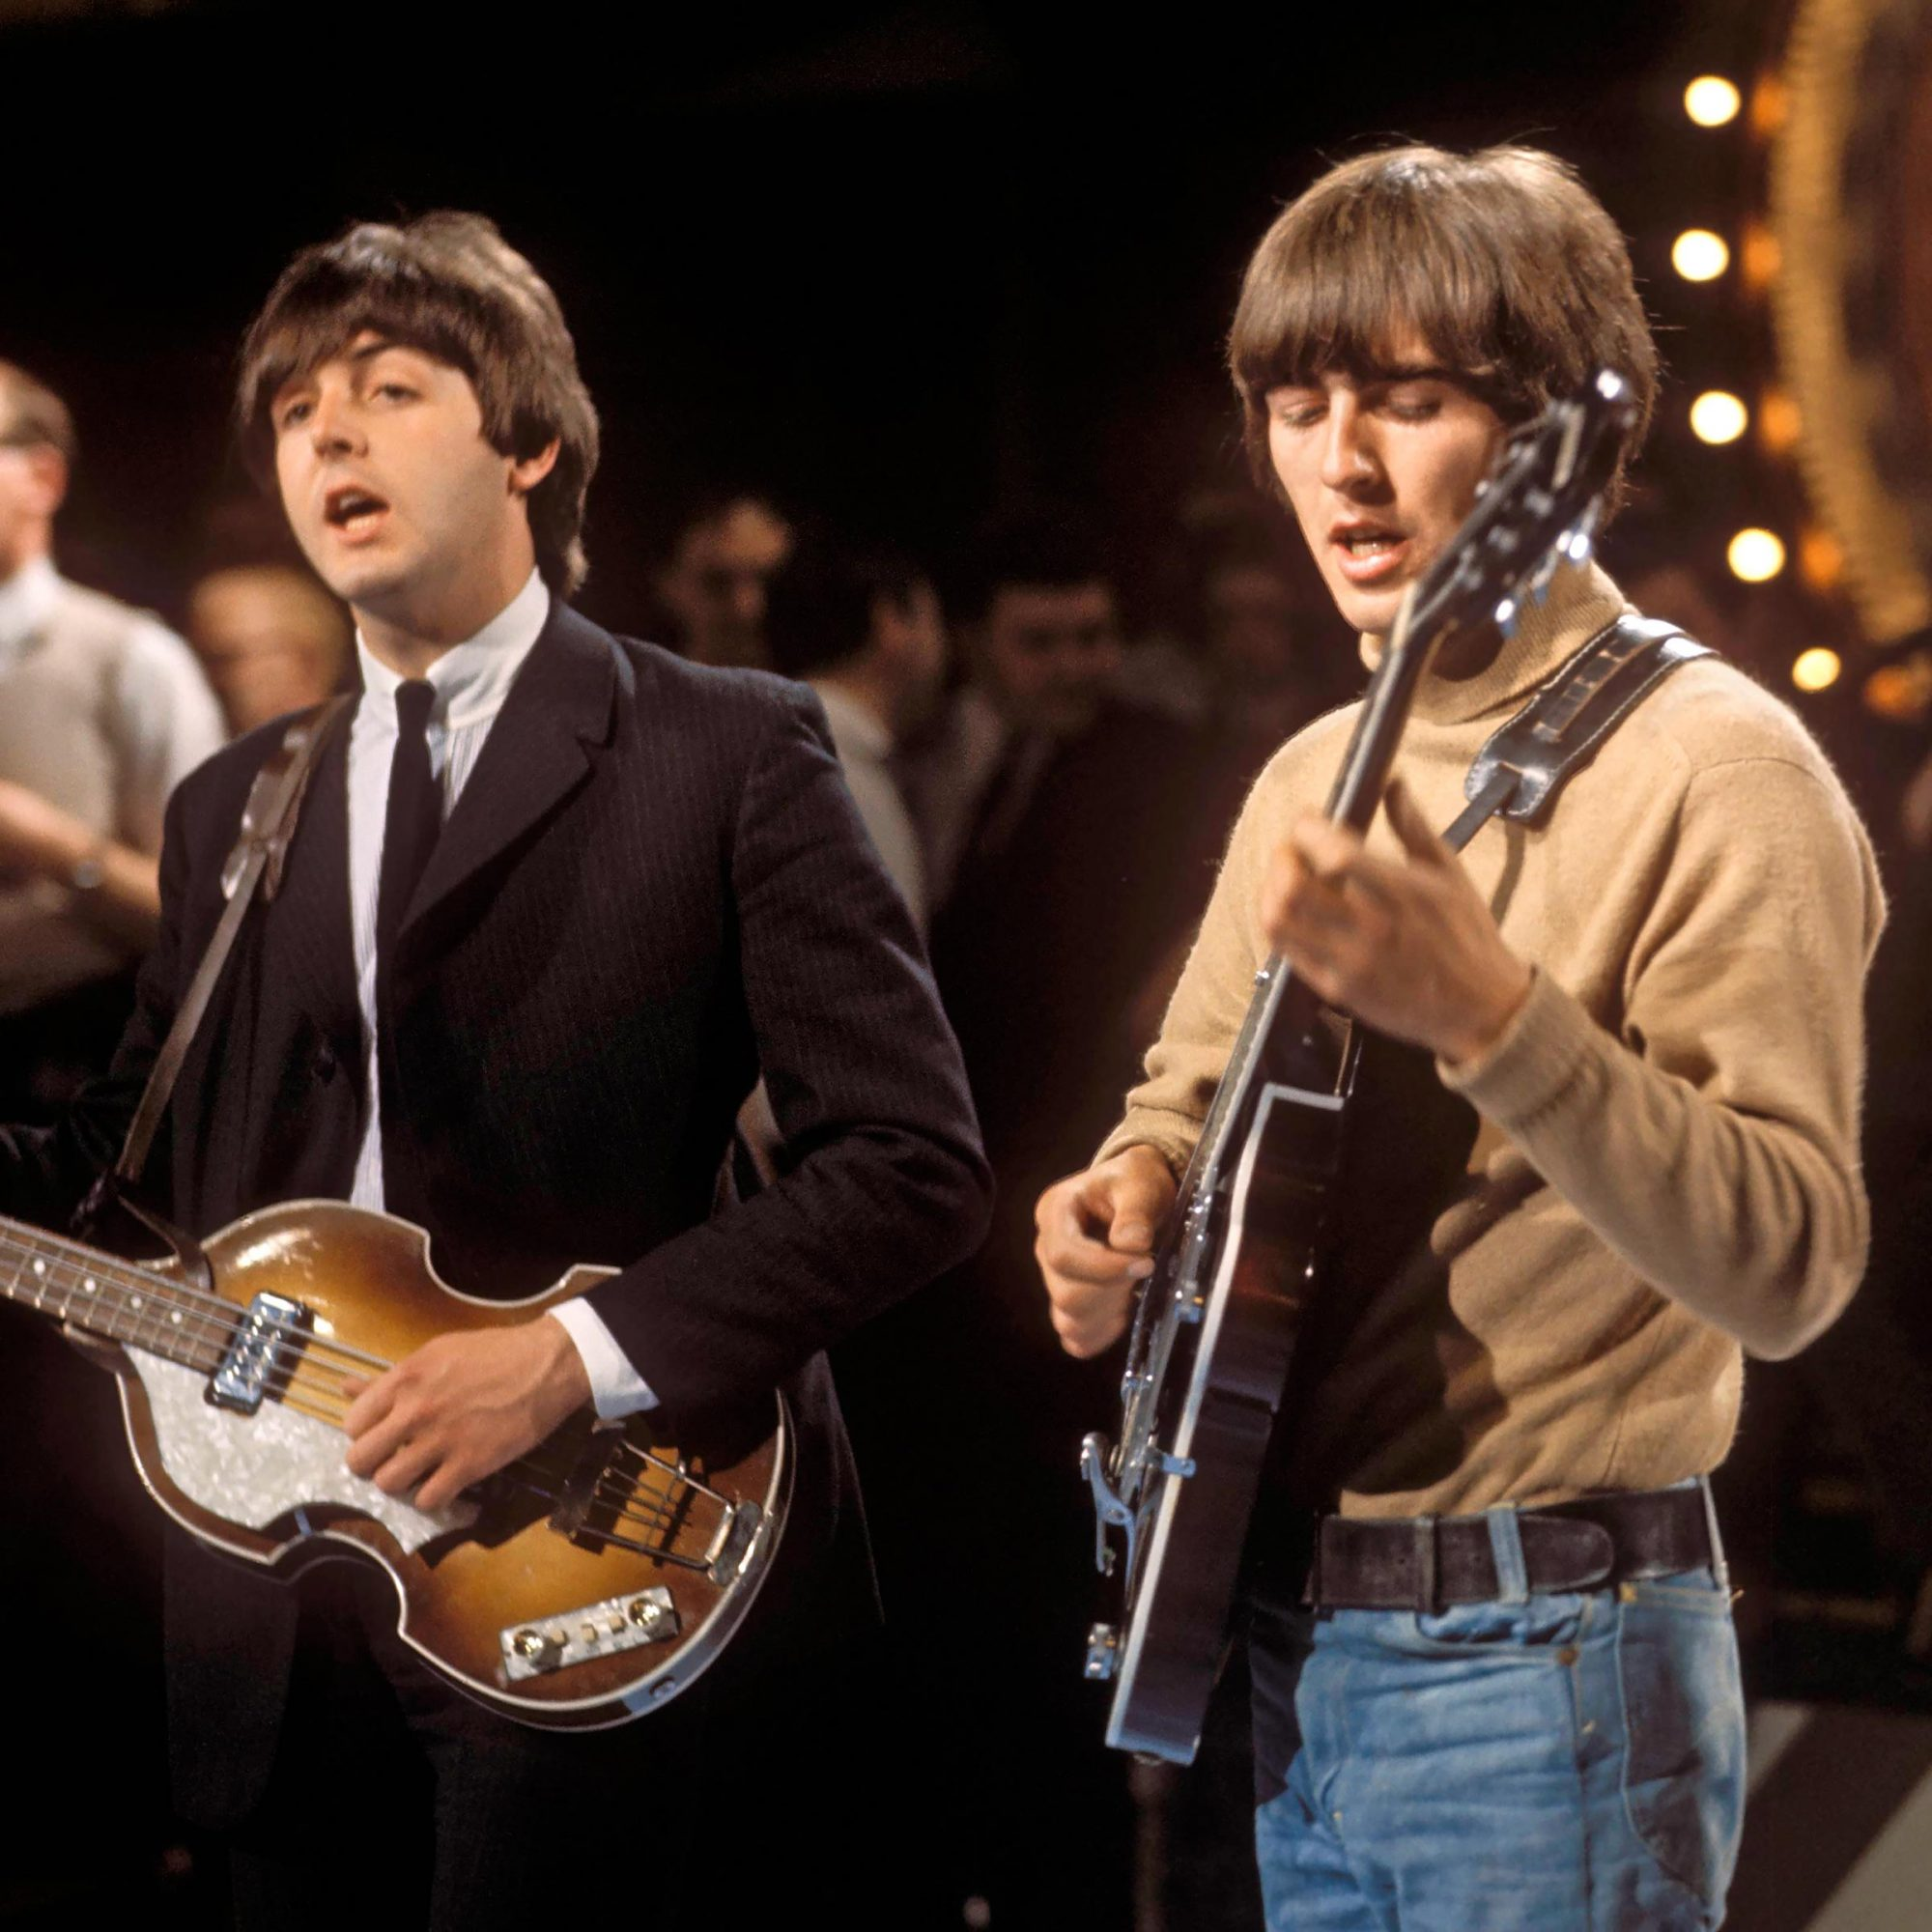 Photo of George HARRISON and BEATLES and Paul McCARTNEY